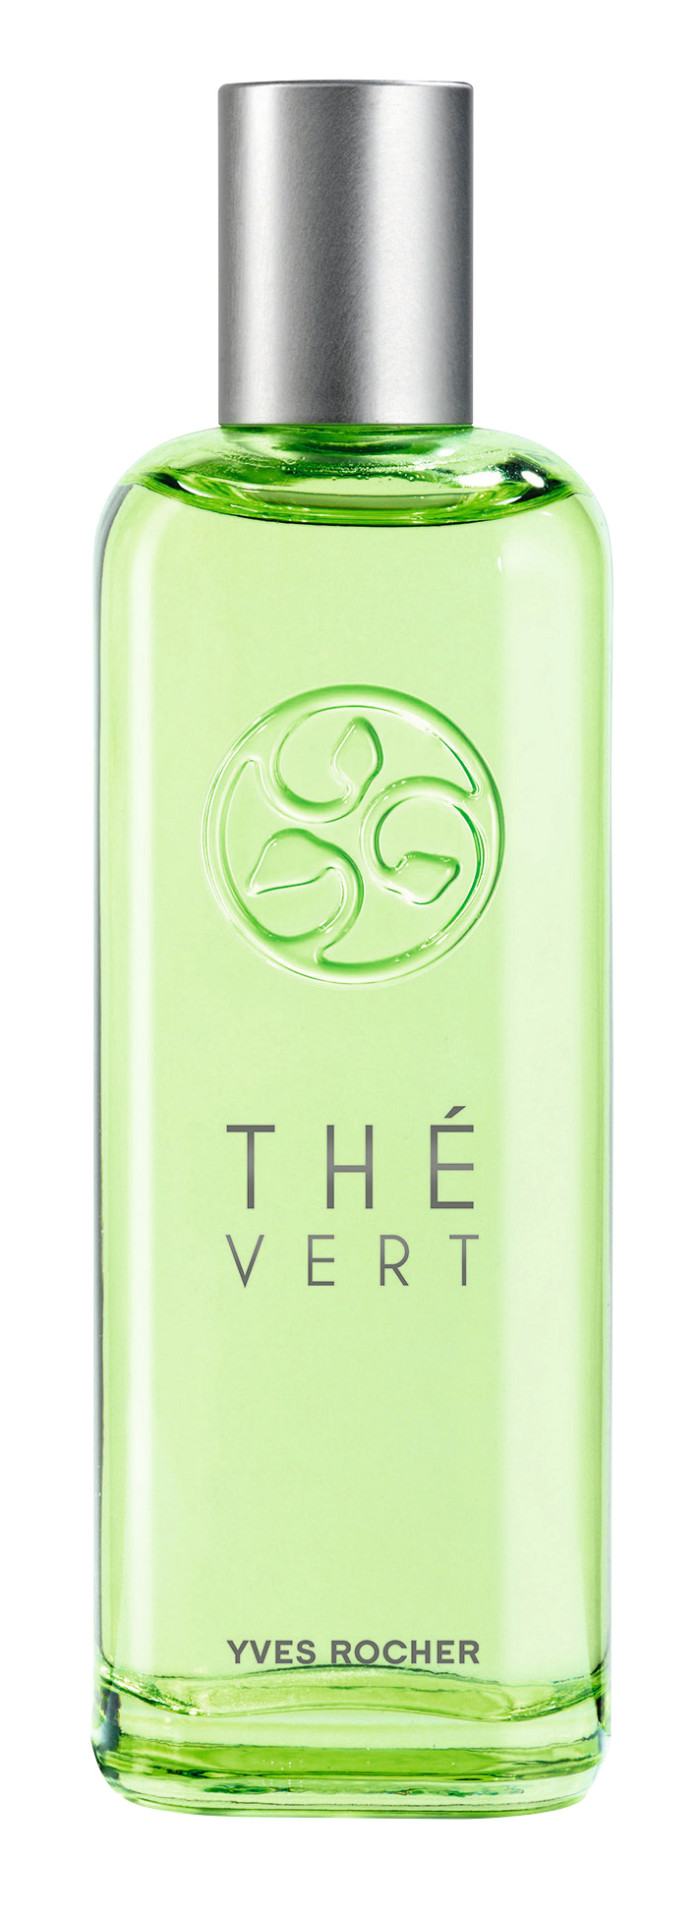 ... The Vert Yves Rocher for women and men Pictures